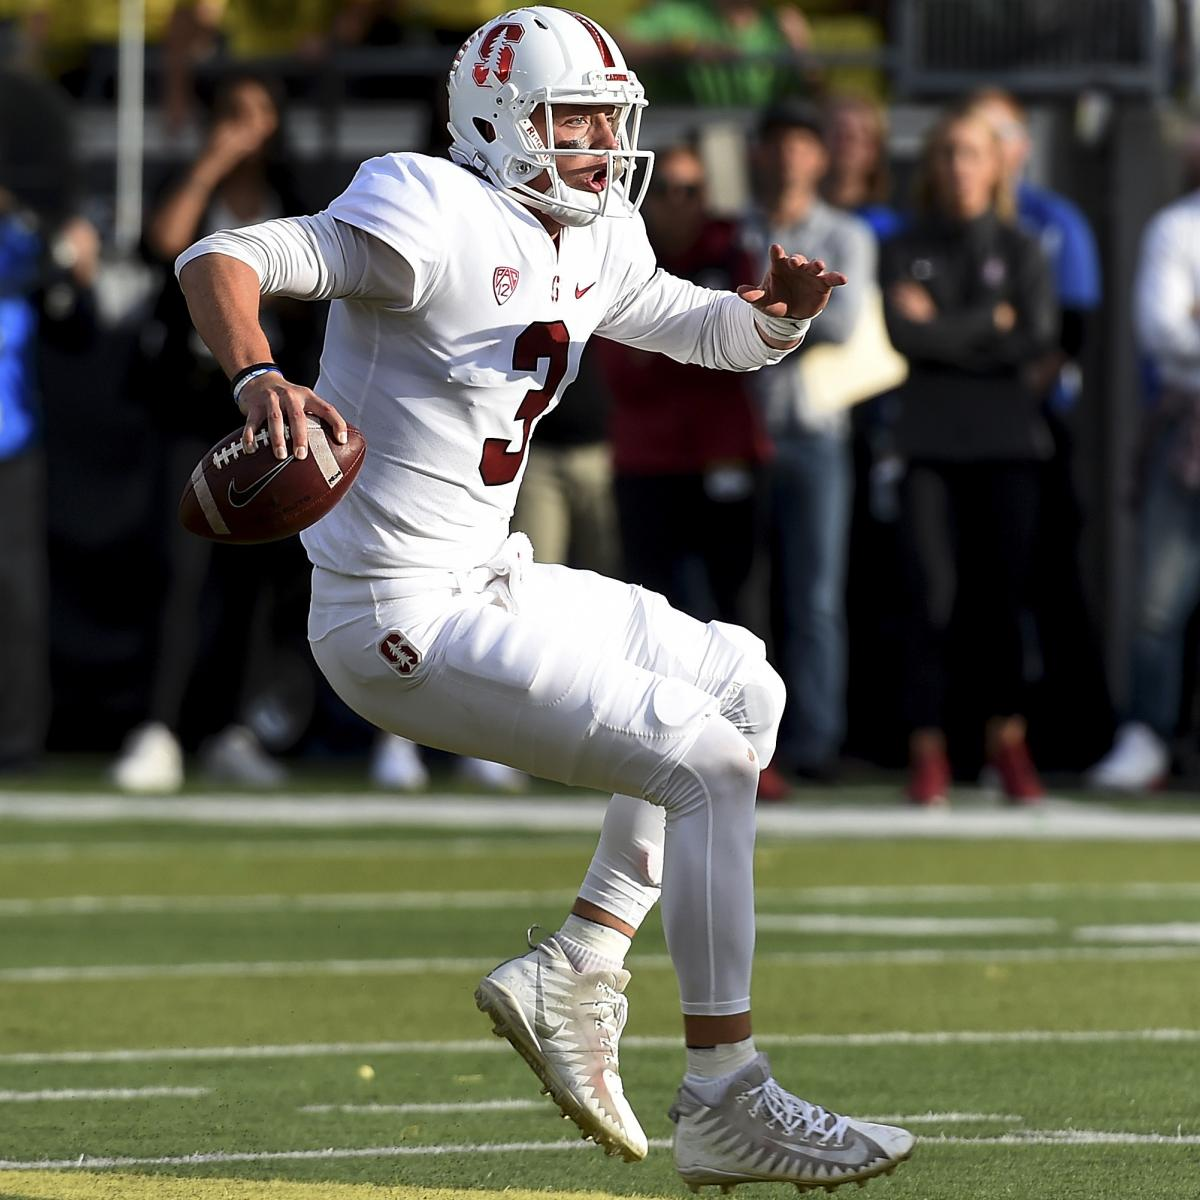 Stanford Pulls Off Miracle Comeback to Beat Oregon 38-31 in OT | Bleacher Report | Latest News, Videos and Highlights